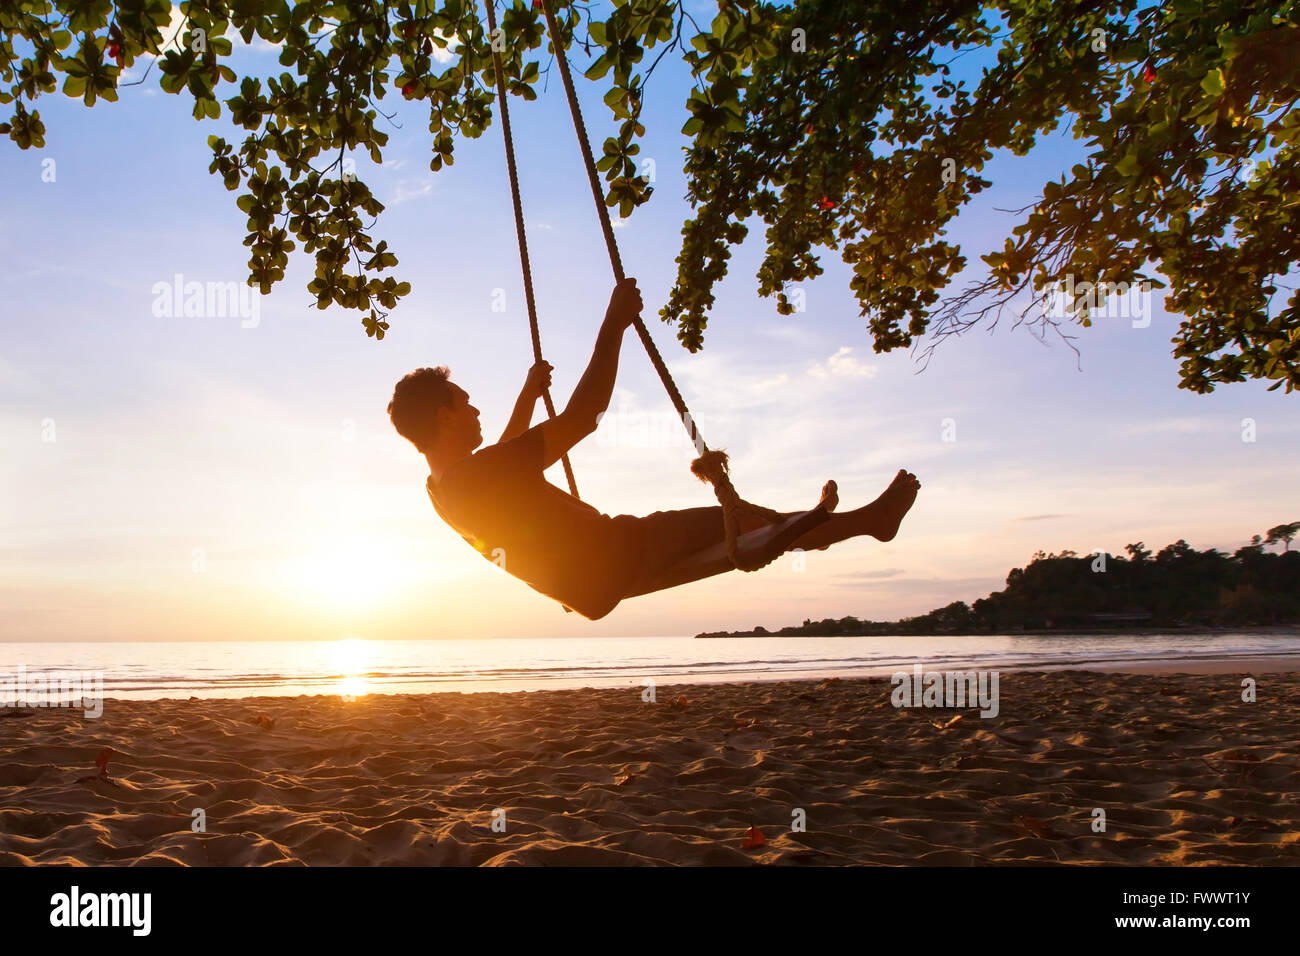 swing on paradise tropical beach at sunset, happy people enjoying summer - Stock Image